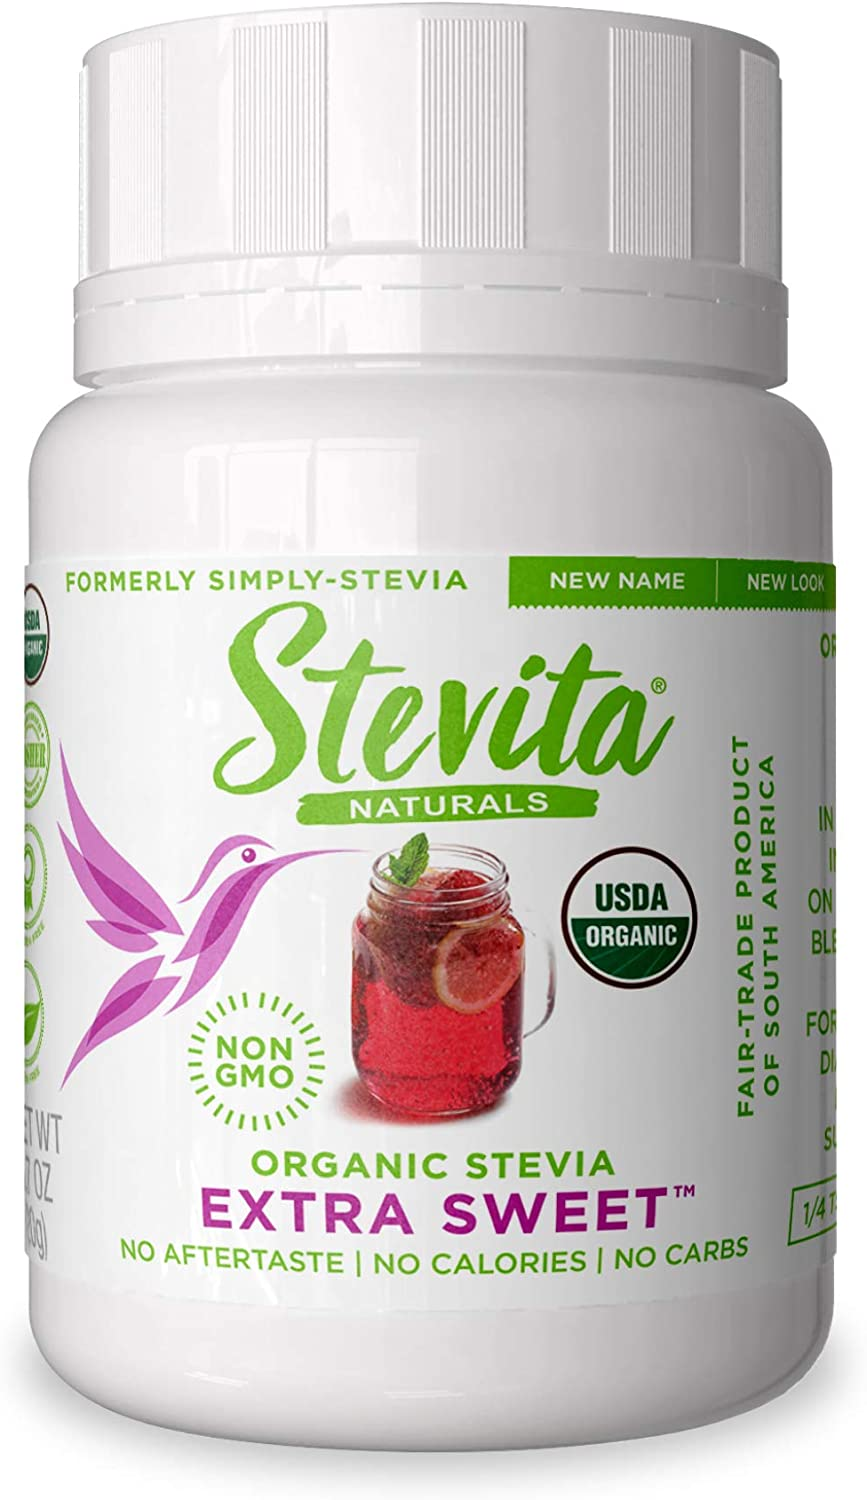 Stevita Simply Stevia Powder - .7 Ounce Jar - Pure Stevia All Natural, No Calorie Sweetener - USDA Organic, Non GMO, Vegan, Kosher, Paleo, Gluten-Free - 200 Servings